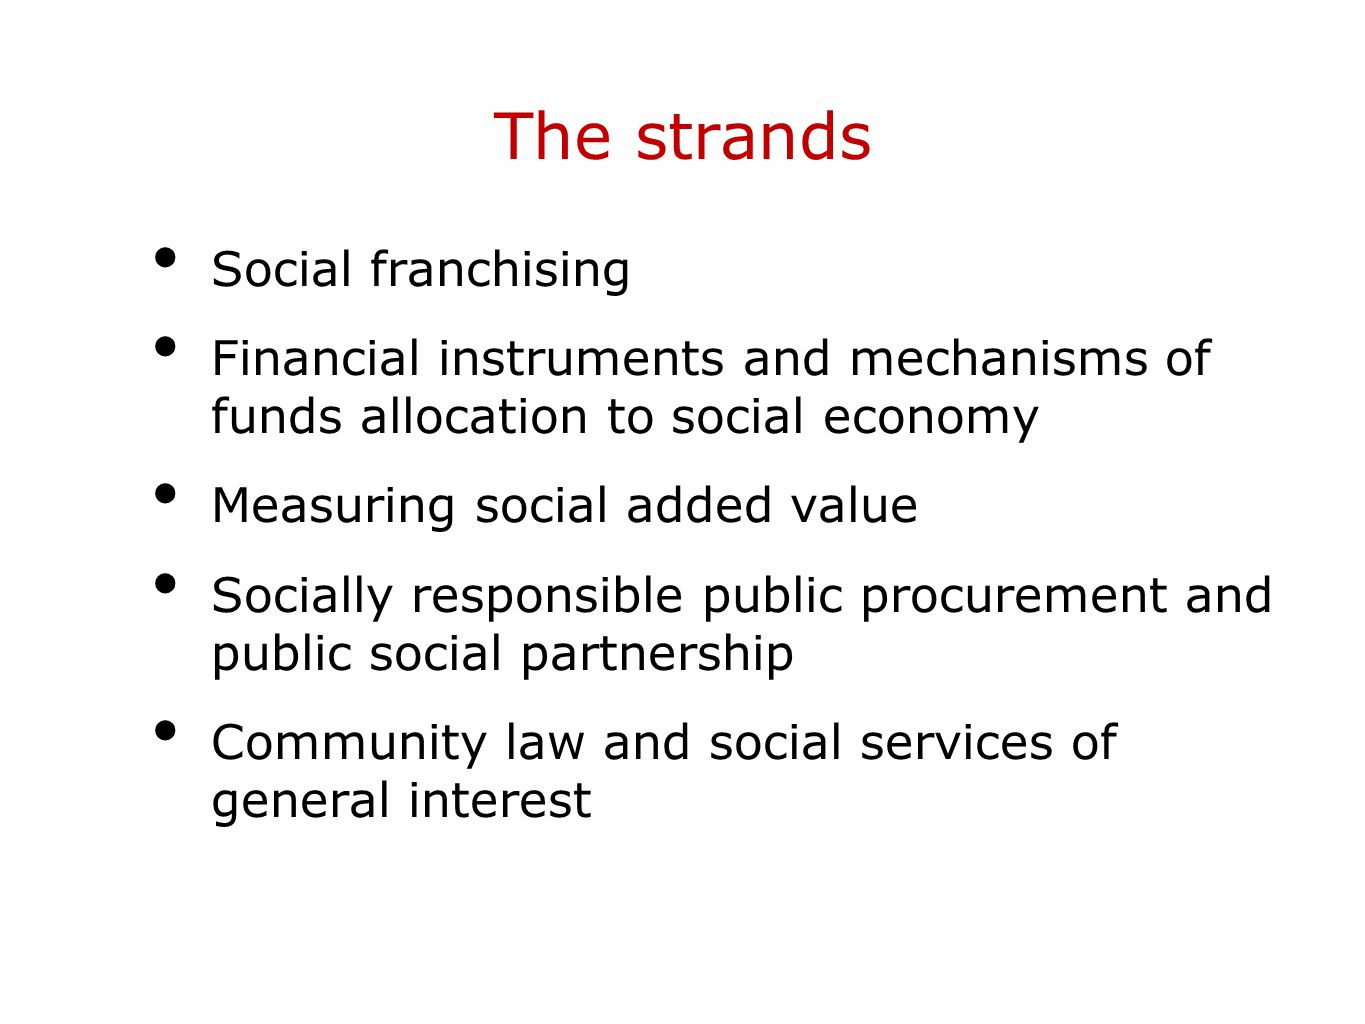 The strands Social franchising Financial instruments and mechanisms of funds allocation to social economy Measuring social added value Socially responsible public procurement and public social partnership Community law and social services of general interest